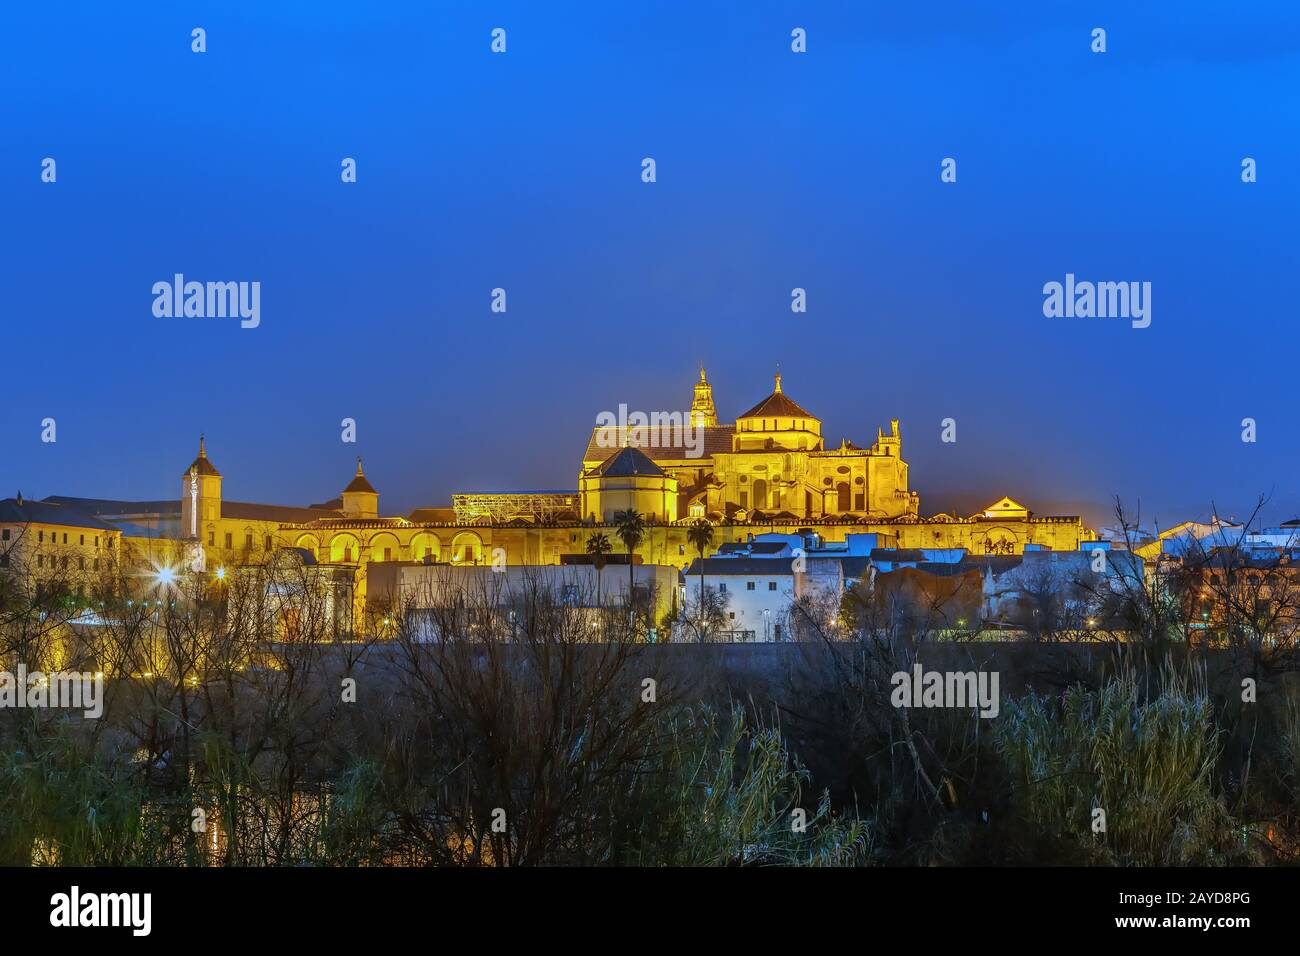 Mosque Cathedral of Cordoba, Spain Stock Photo